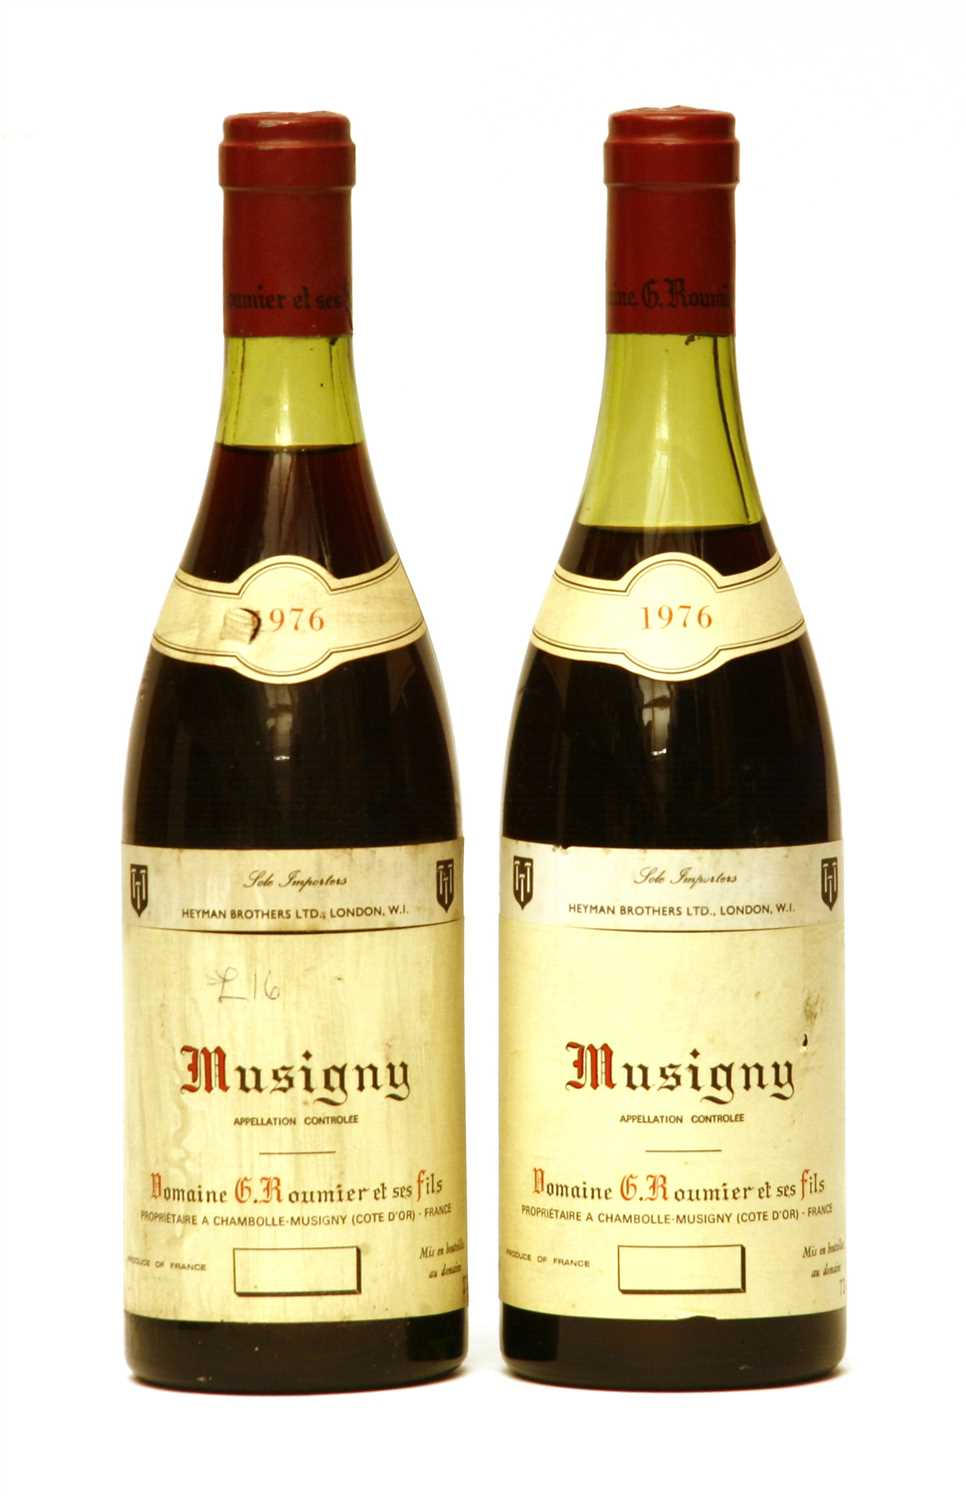 Lot 238 - Domaine G. Roumier, Musigny, 1976, two bottles